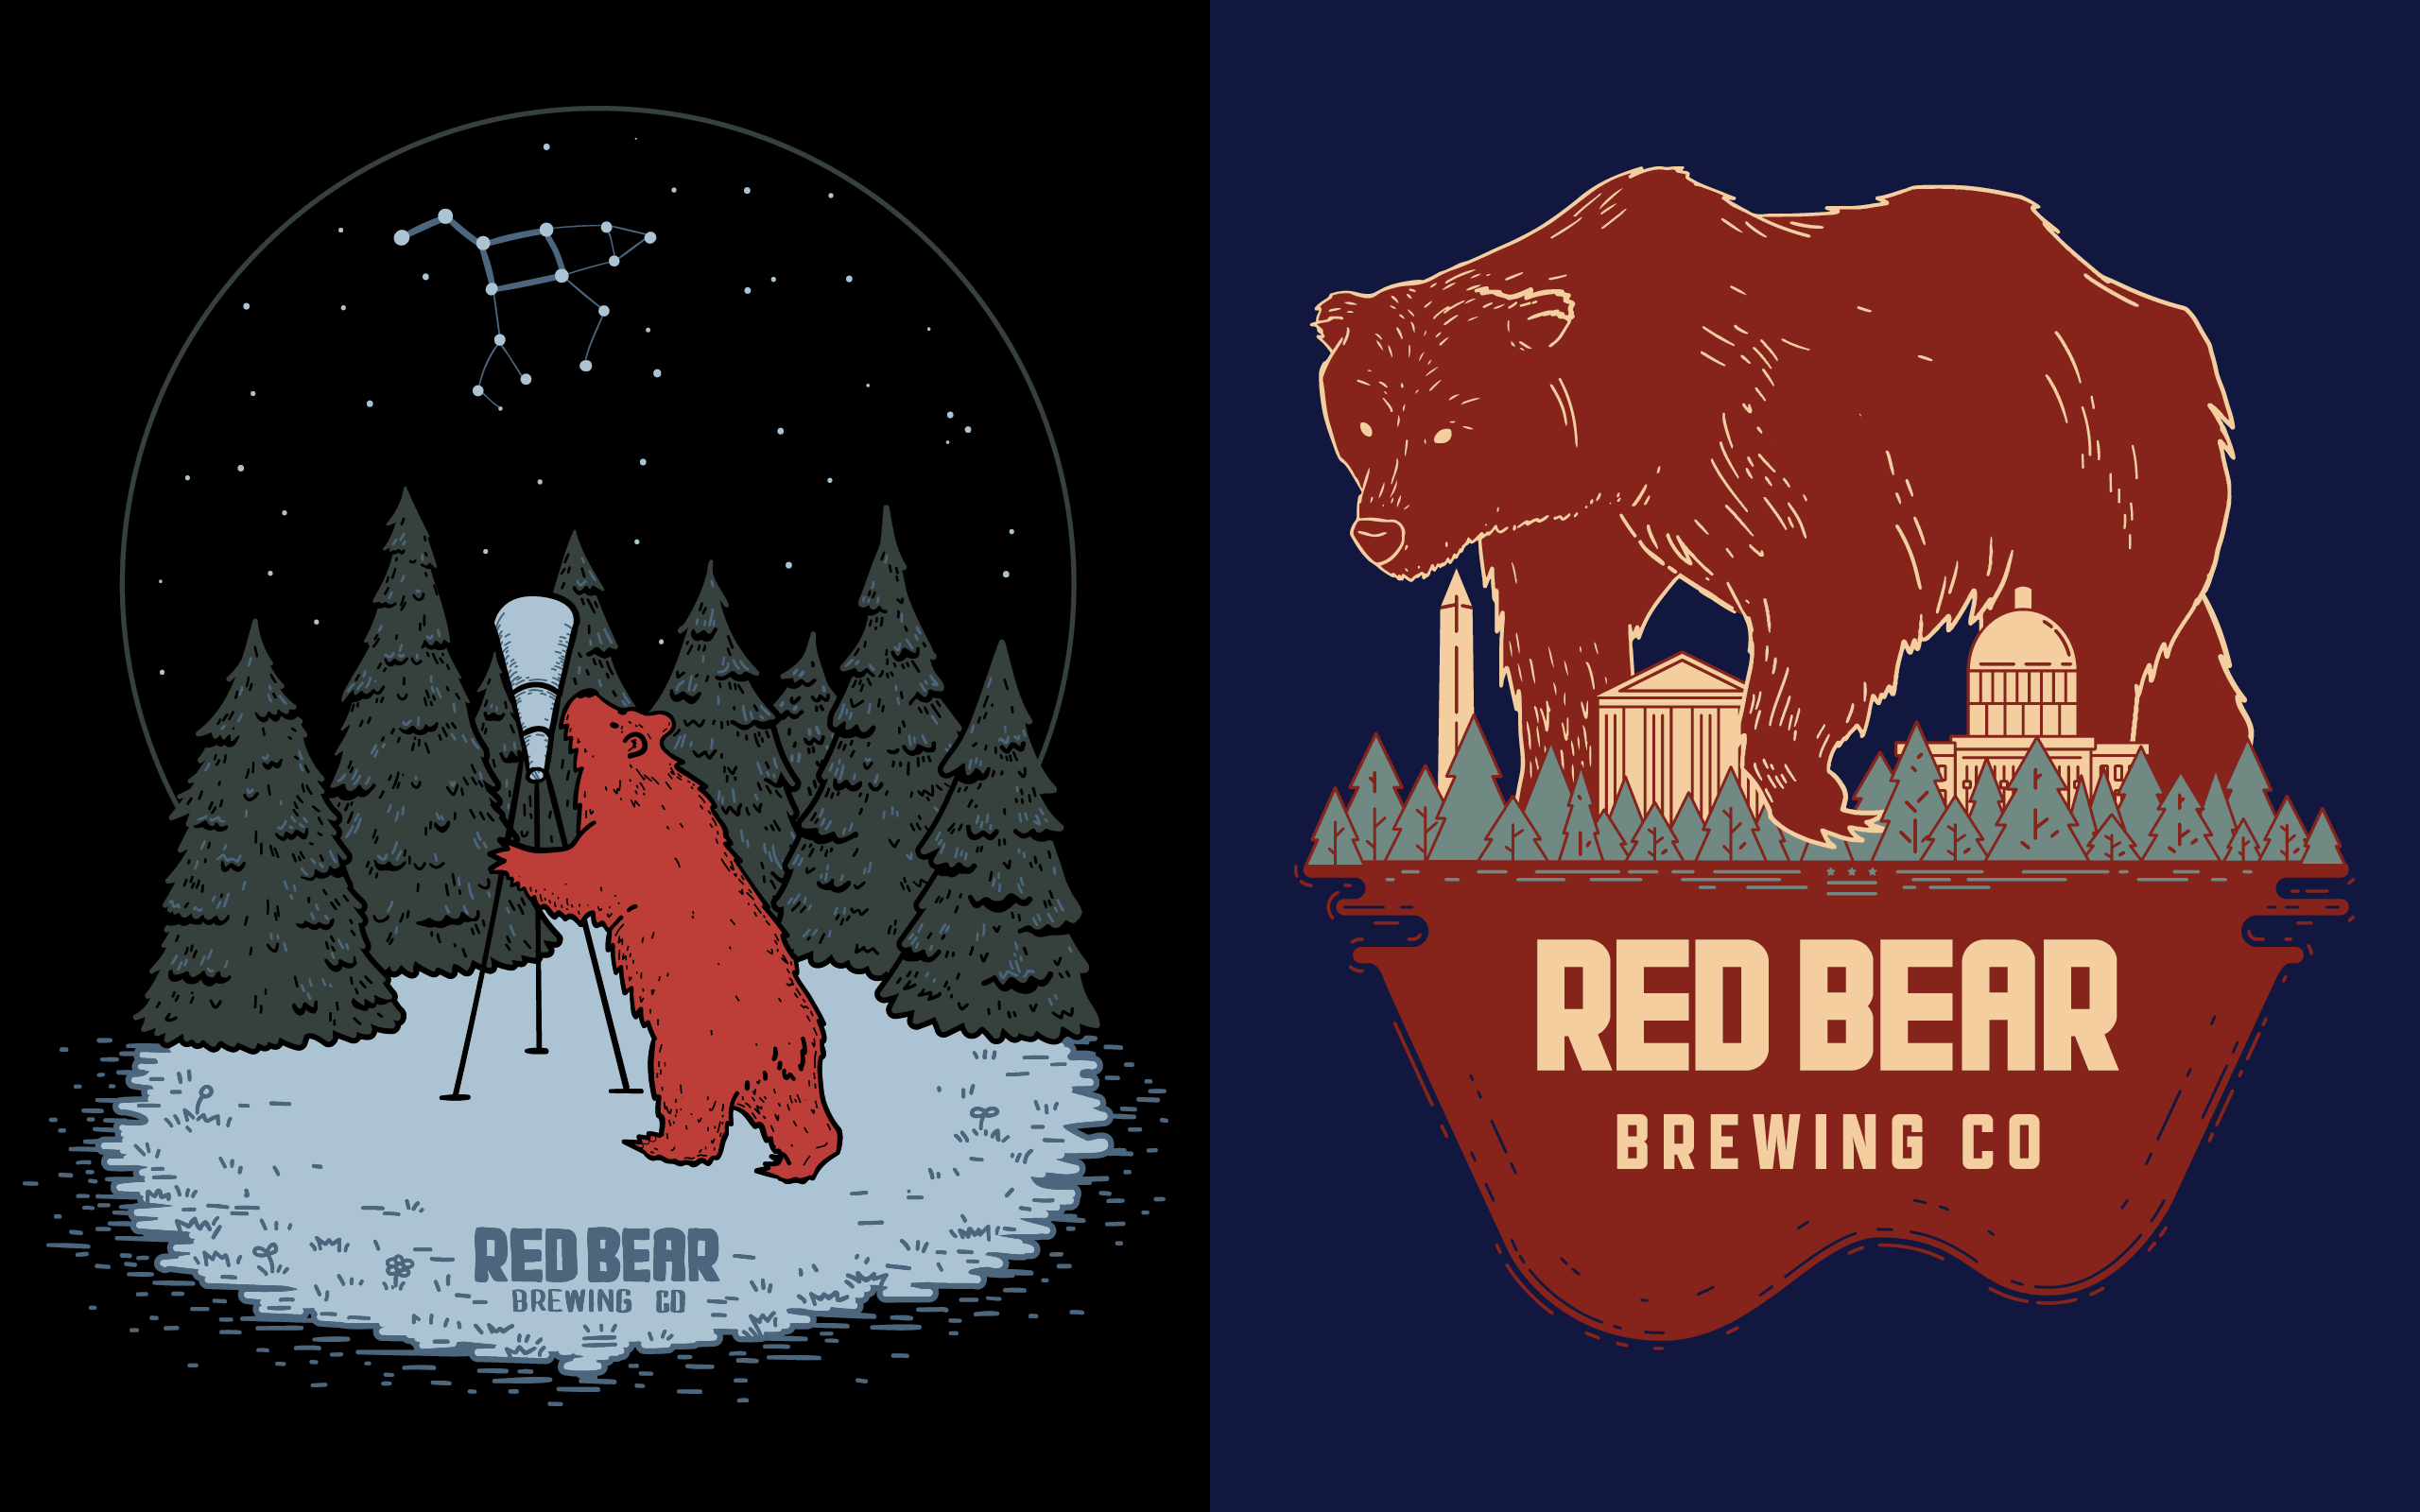 An illustration of a bear looking up at the night sky through a telescope, alongside another illustration of a larger-than-life bear walking between DC monuments and the capitol building